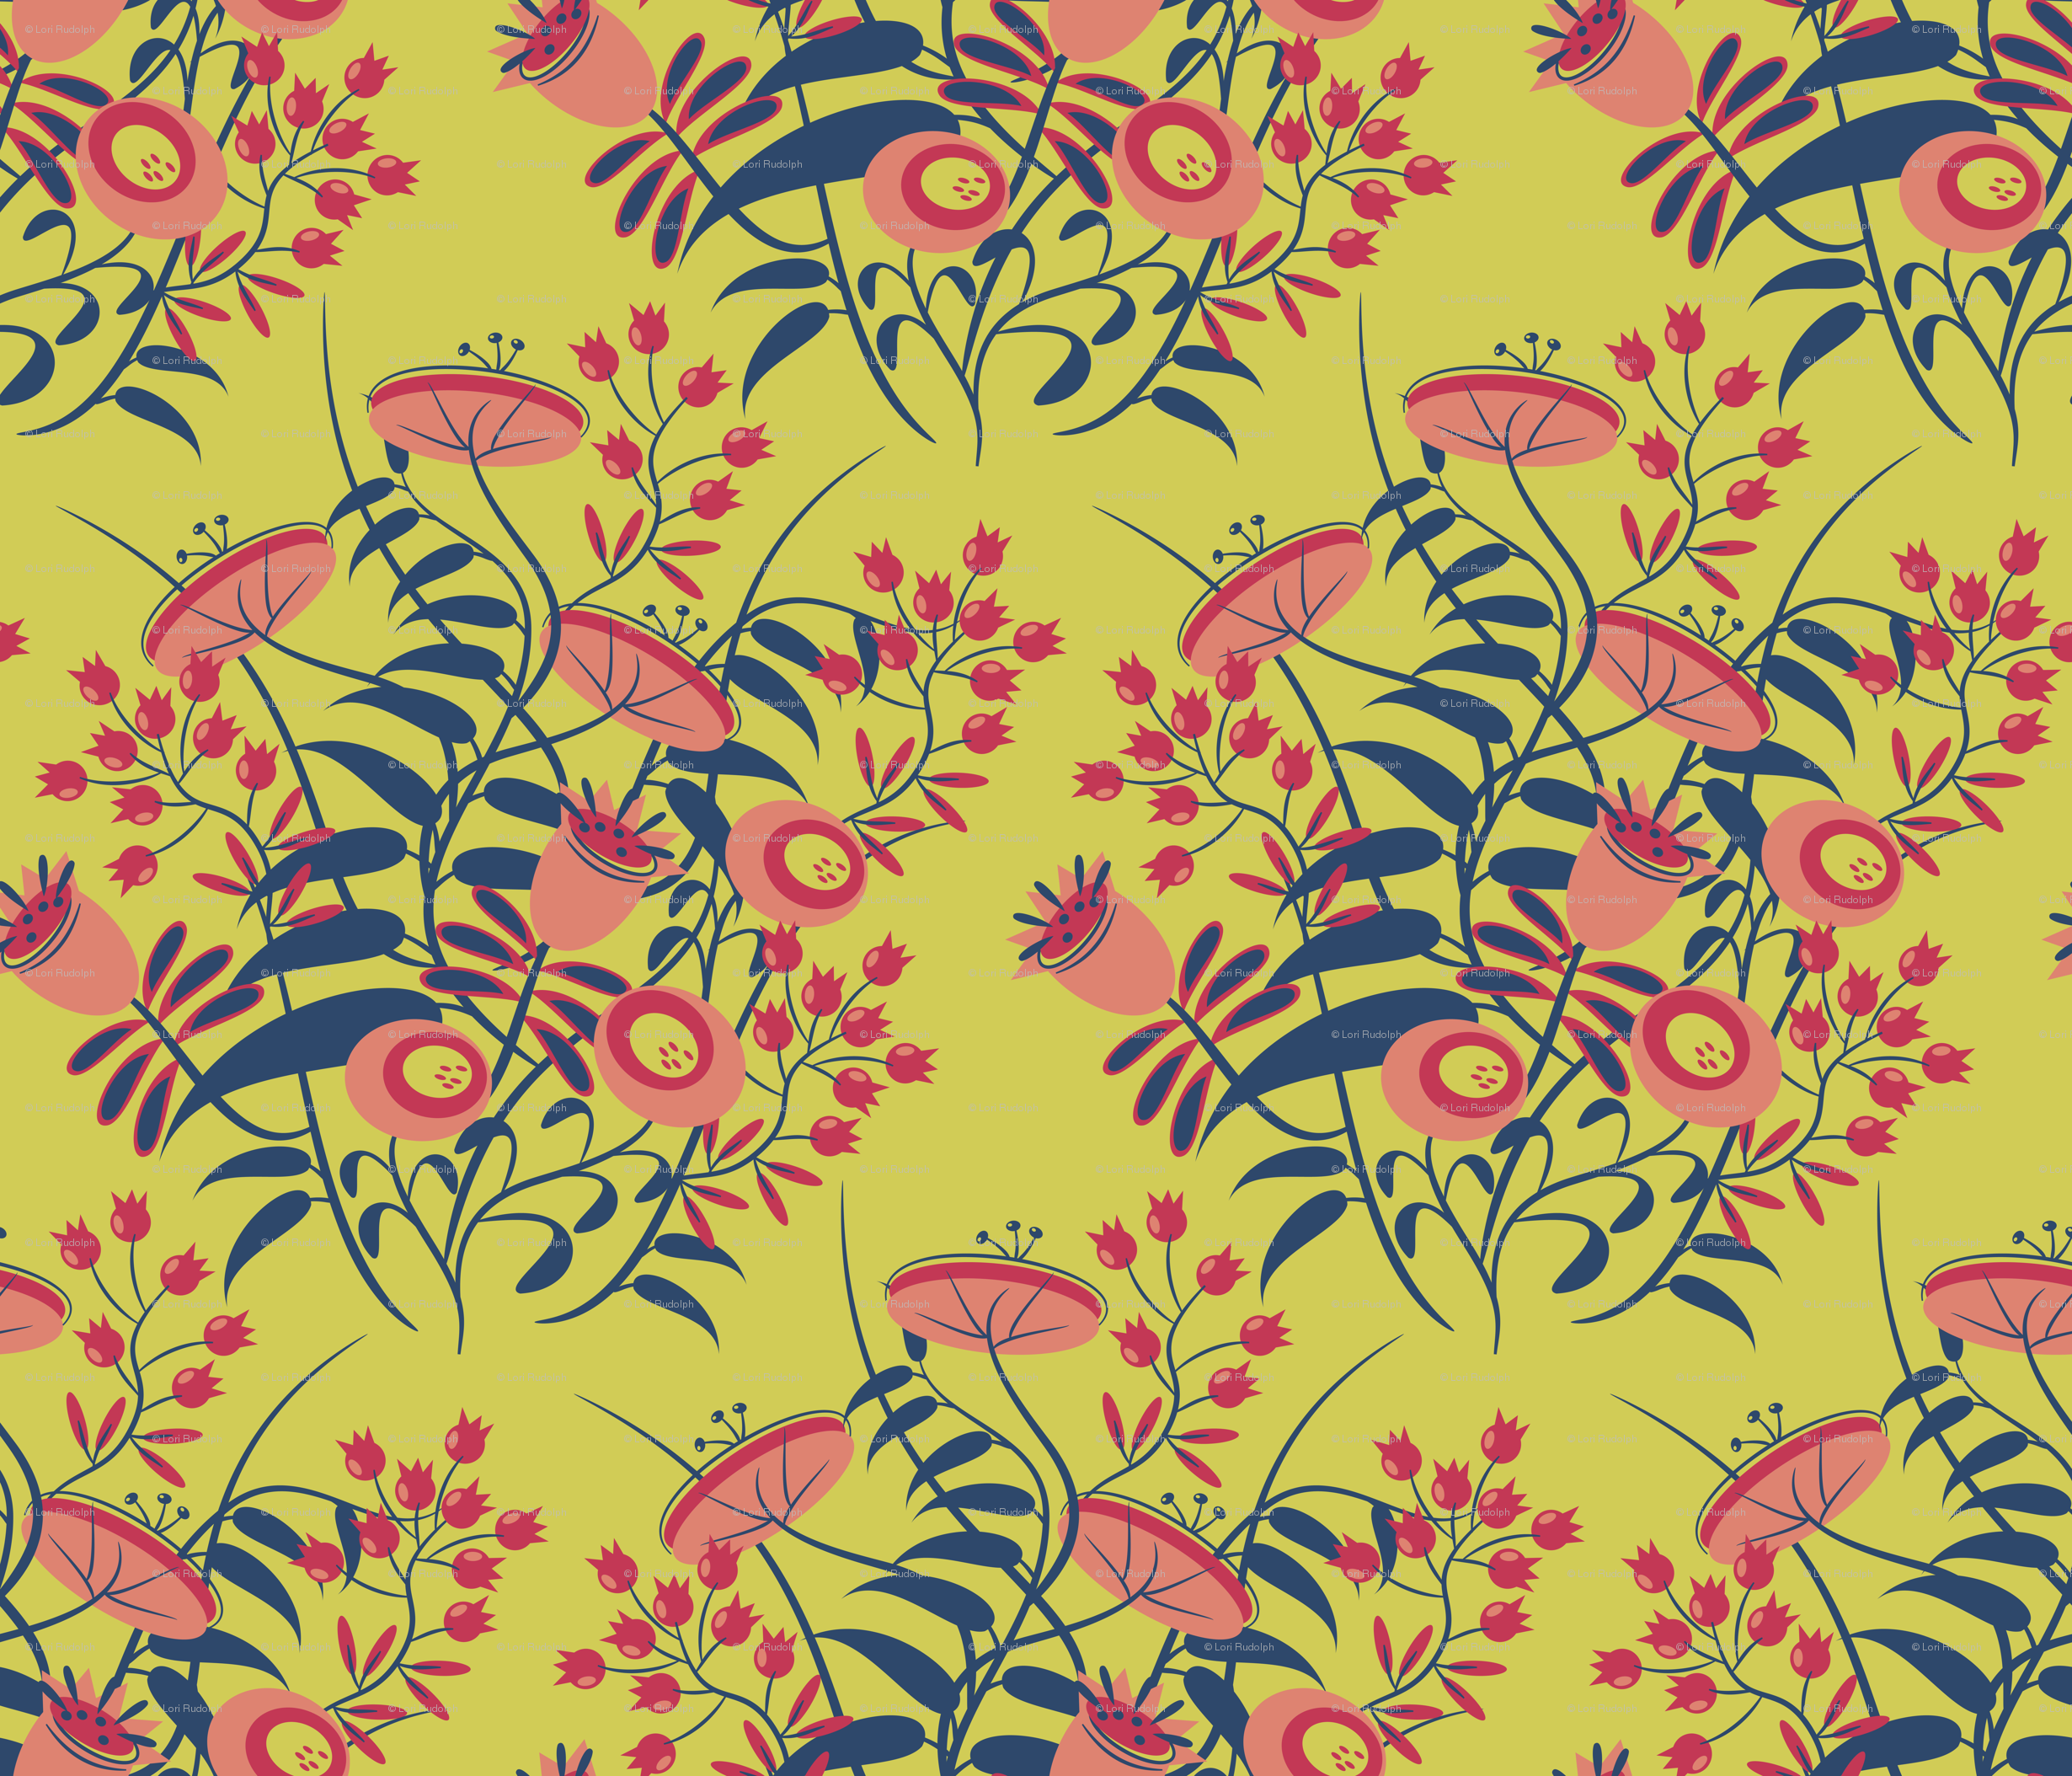 Indie Patterns Tumblr Backgrounds